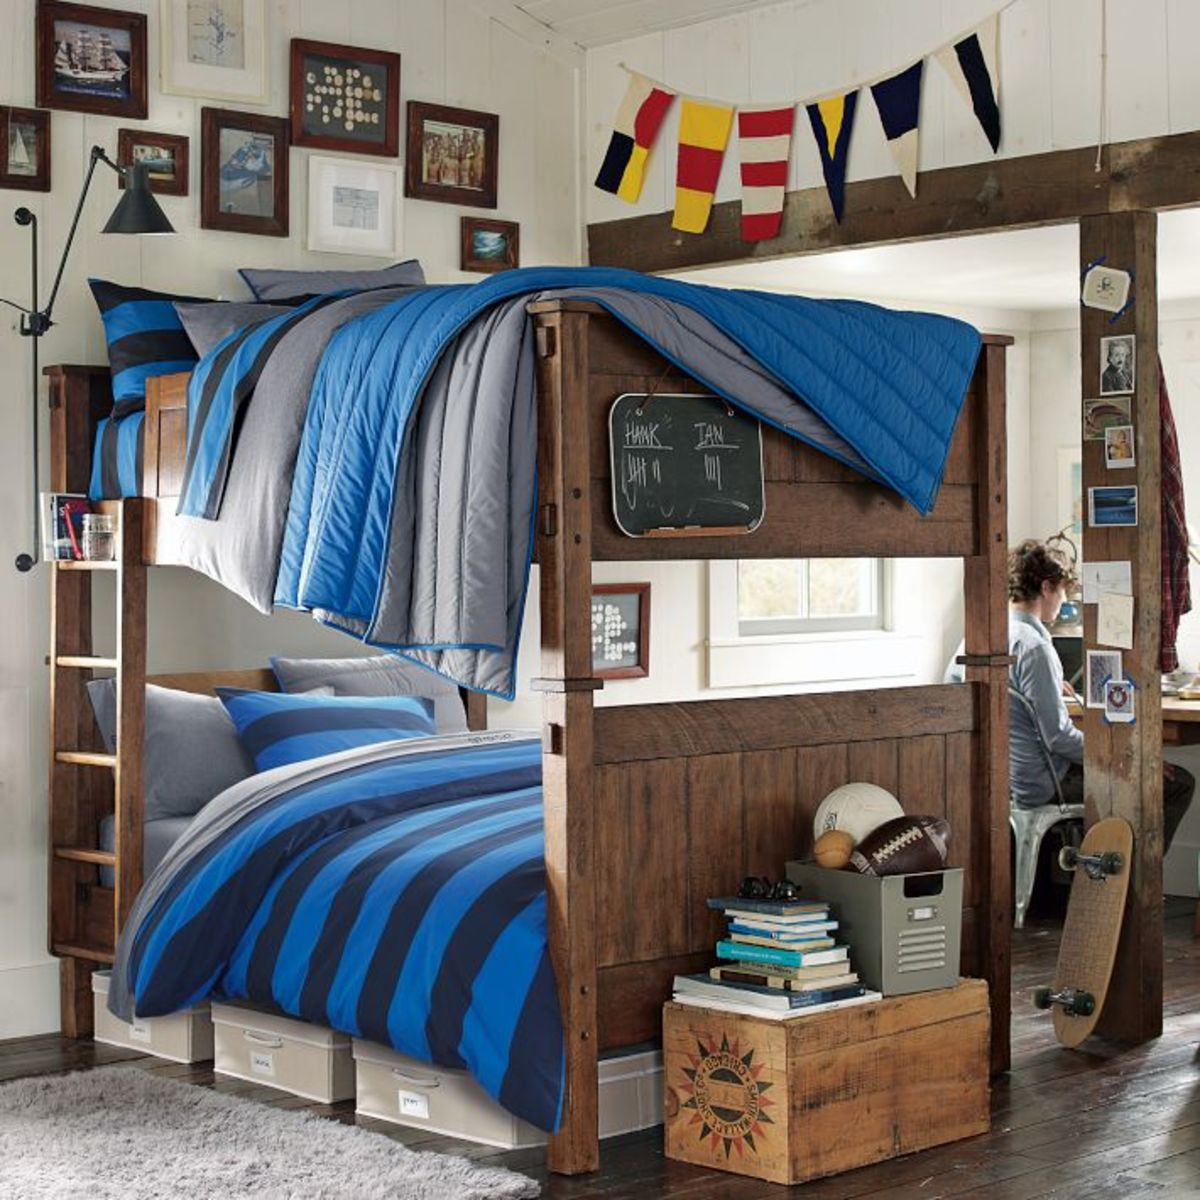 The Best Kids Beds for Shared Bedrooms for Kids  ~ 111230_Dorm Room Decorations Male